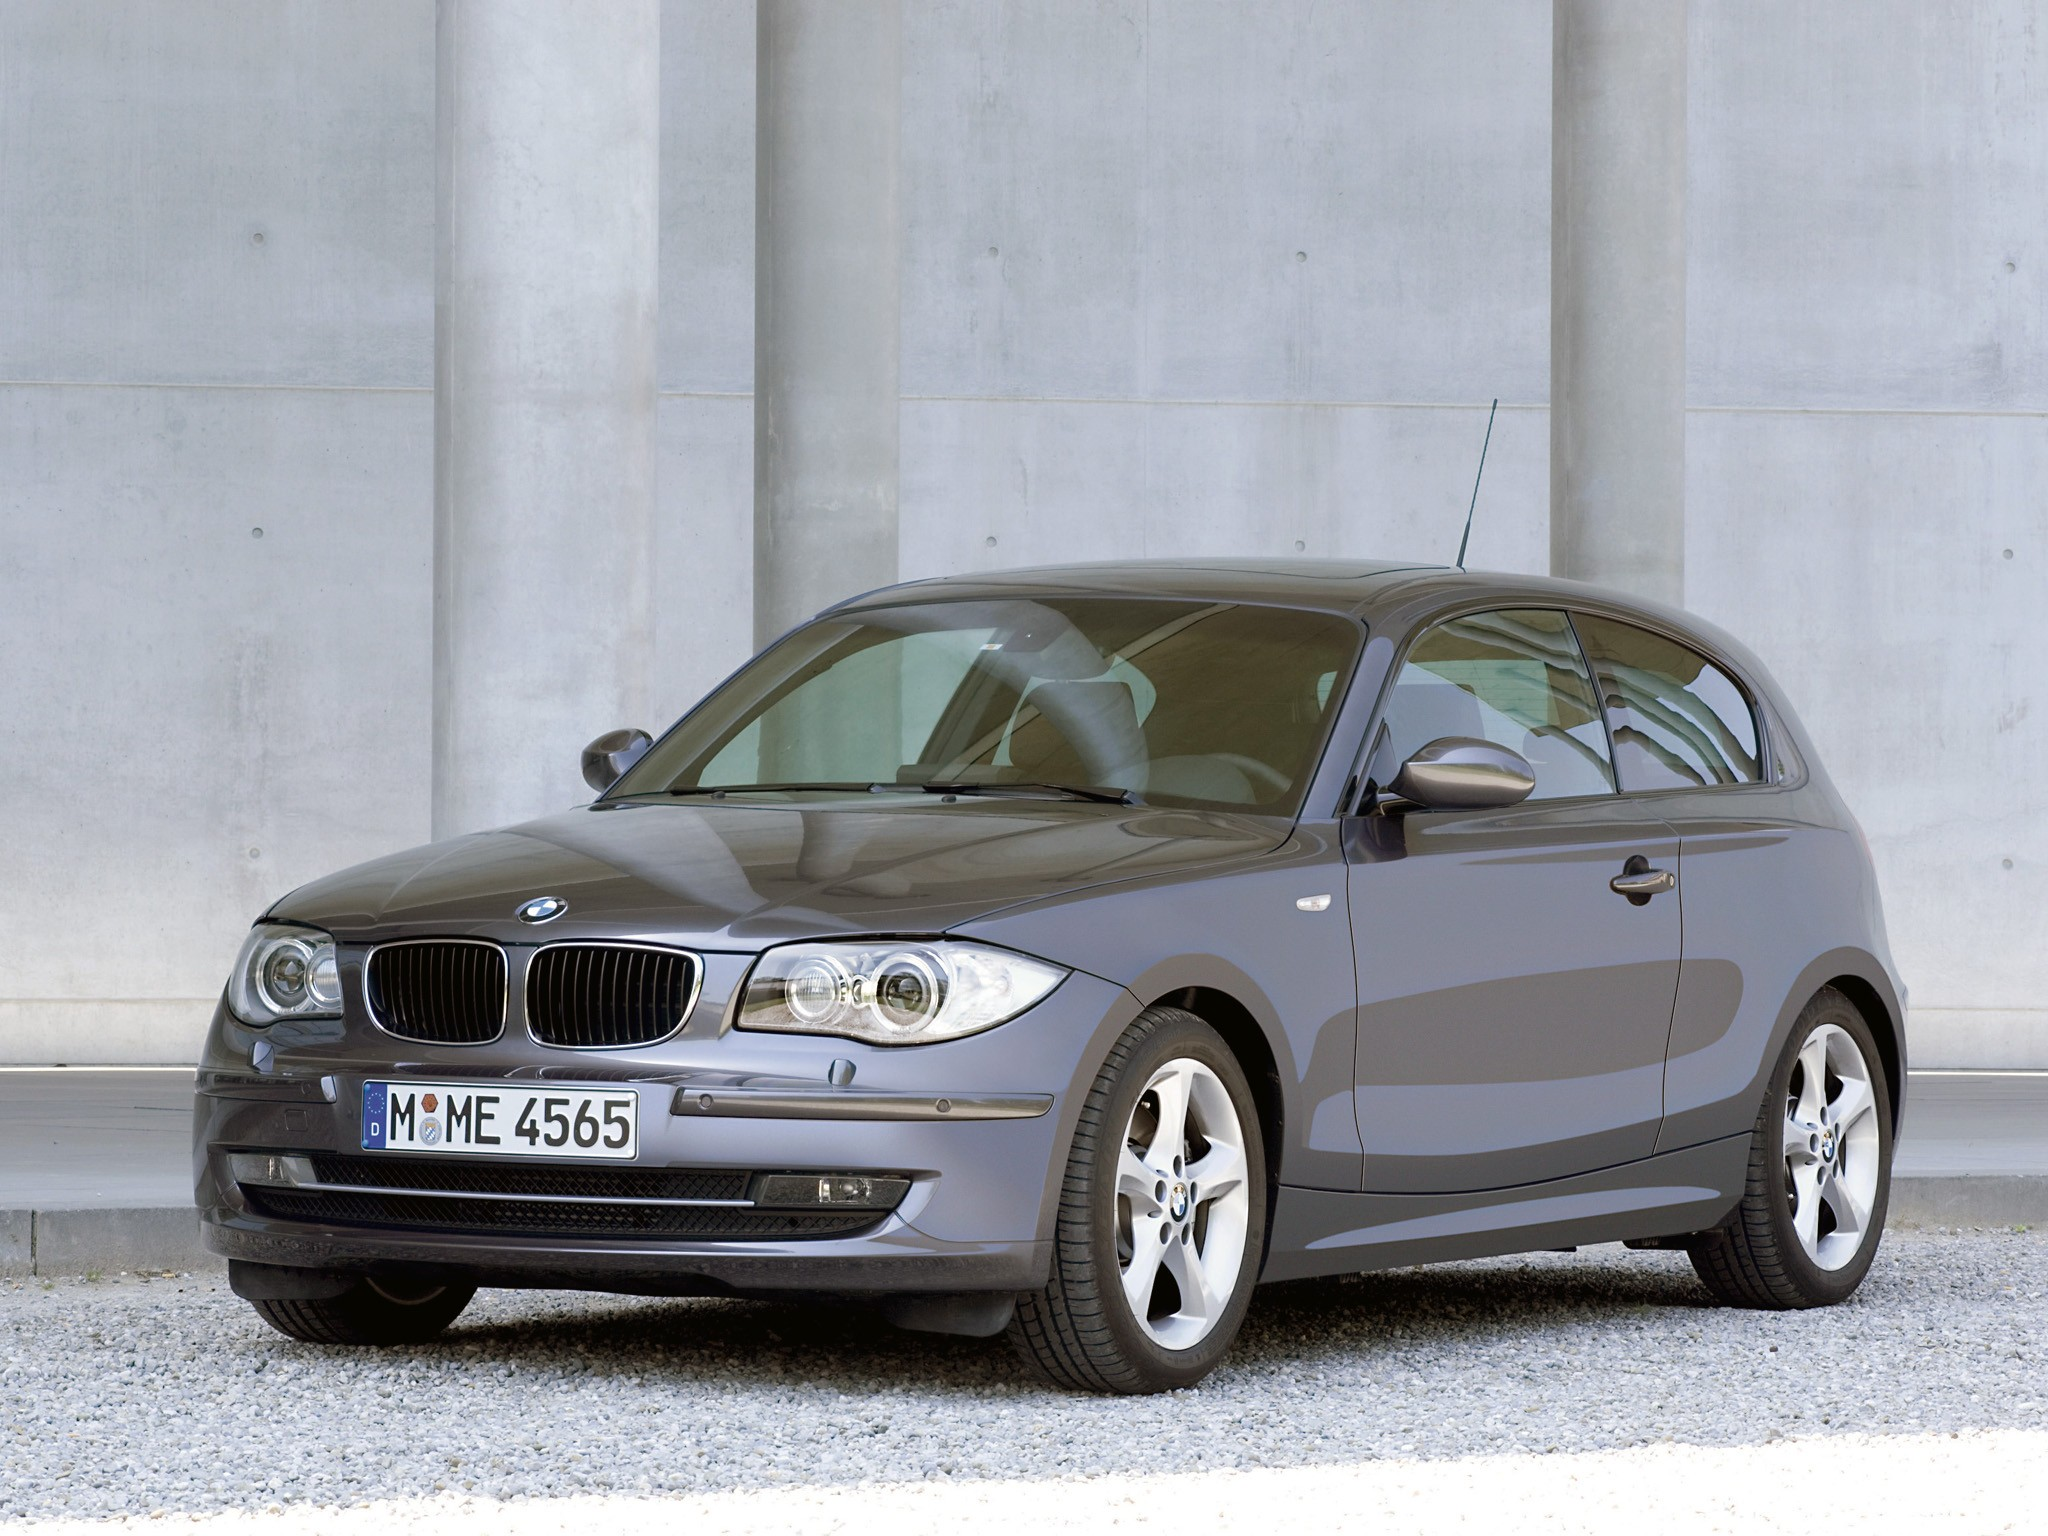 2010 BMW 1 Series 3 door photo - 3